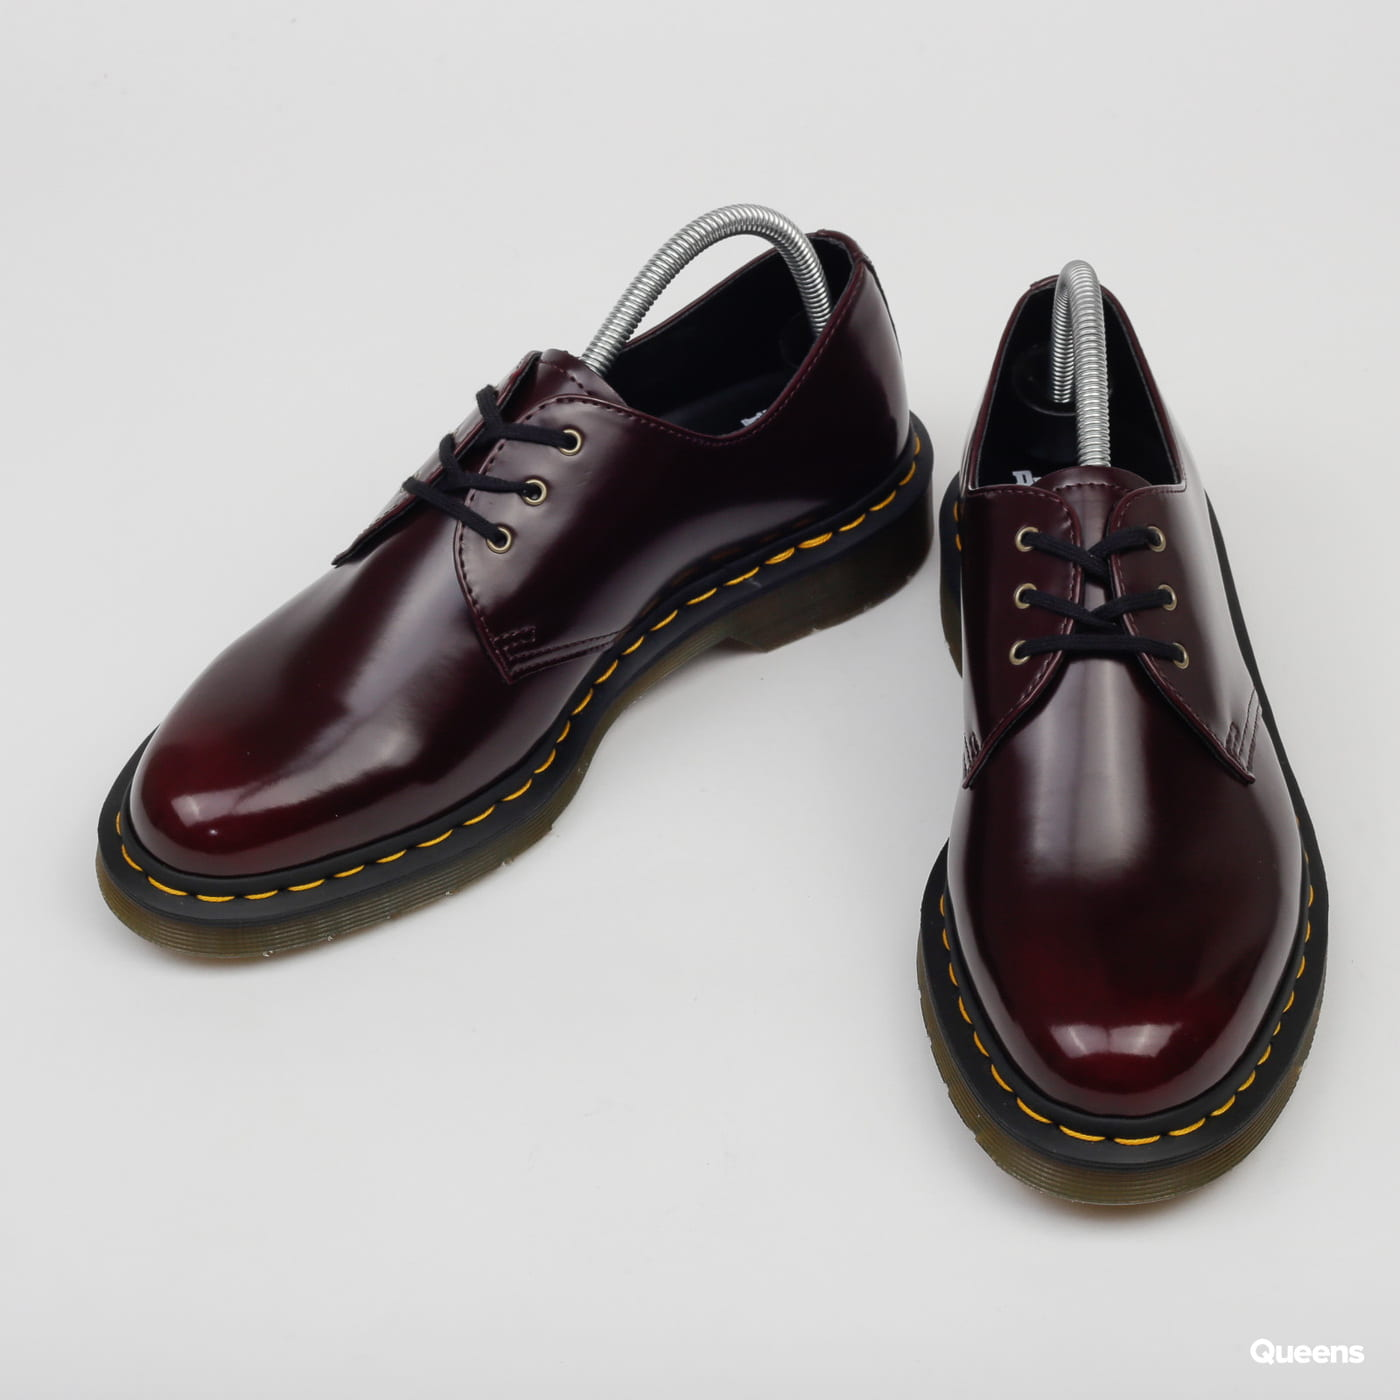 Dr. Martens Vegan 1461 cherry red oxford rub off